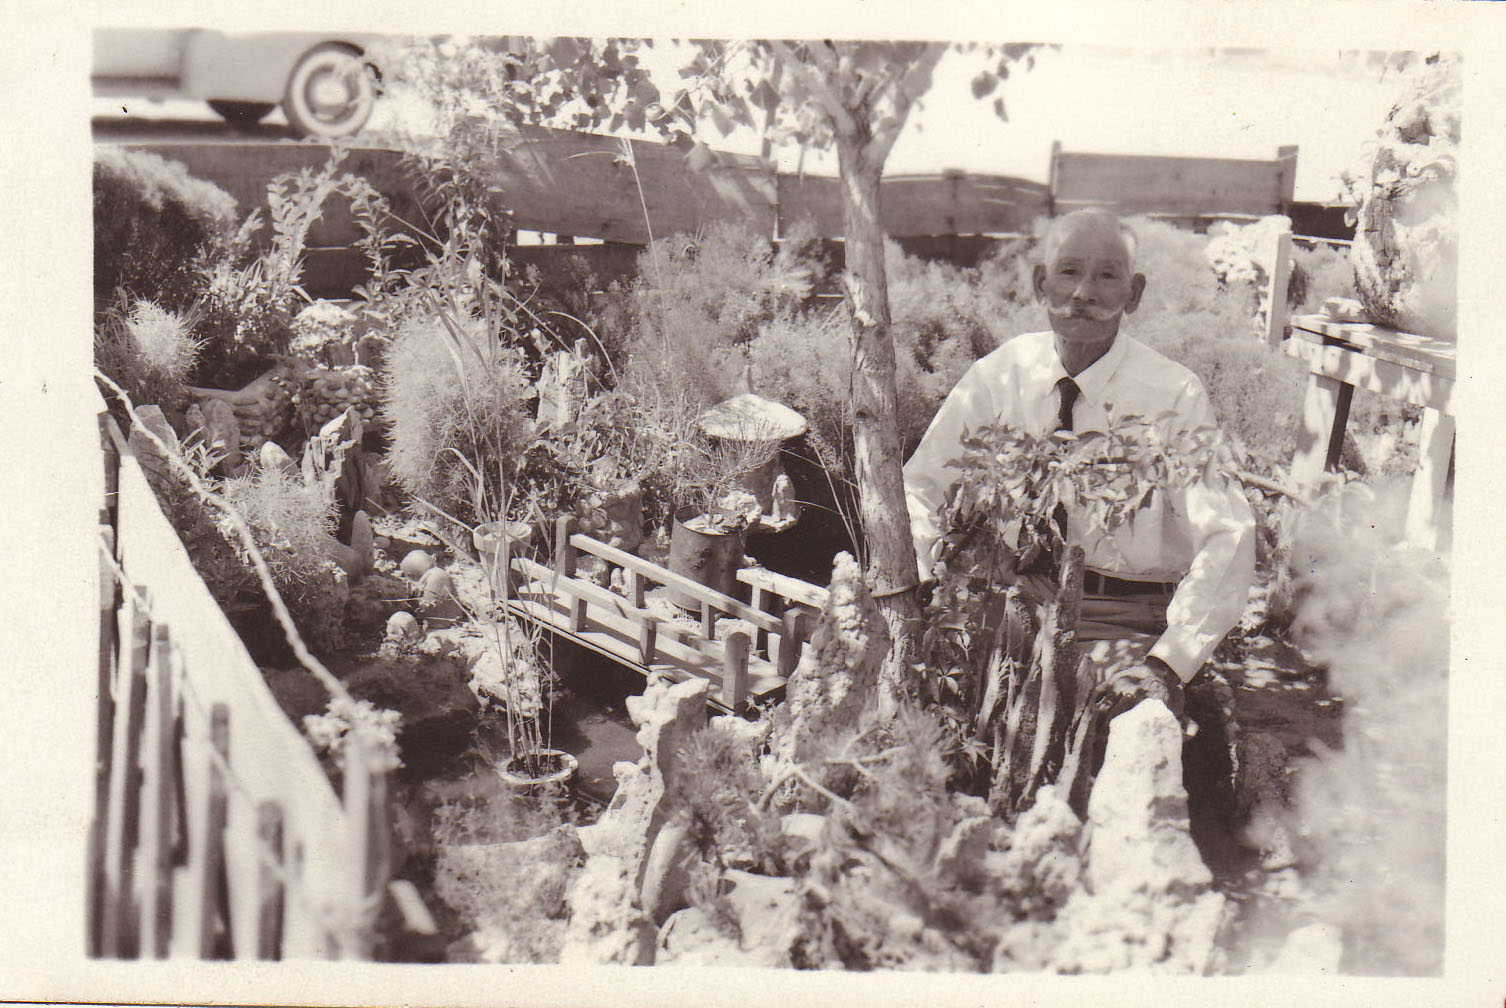 An internee and his ornamental garden at Camp Amache in Granada, Col. during World War II.